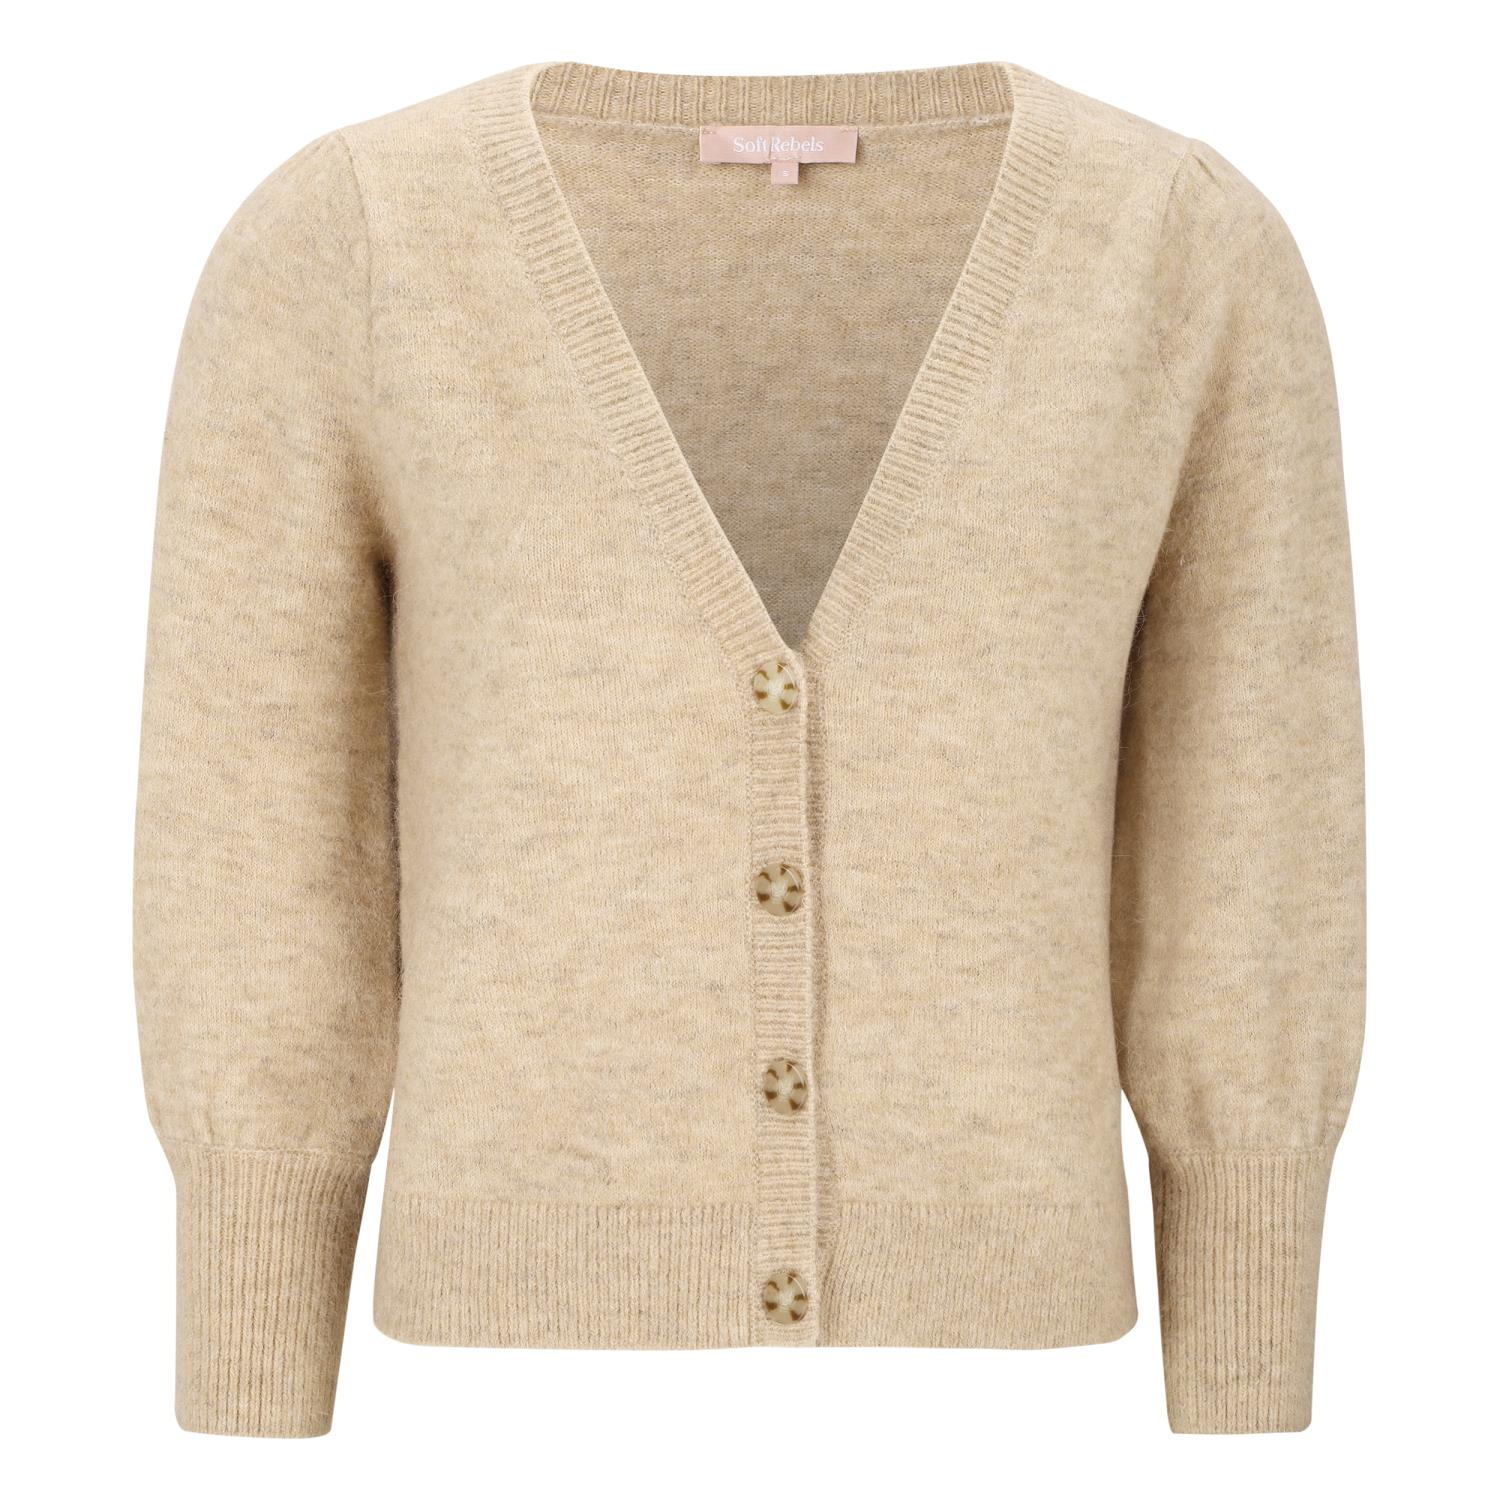 Soft Rebels Liva Cardigan Knit, beige melert